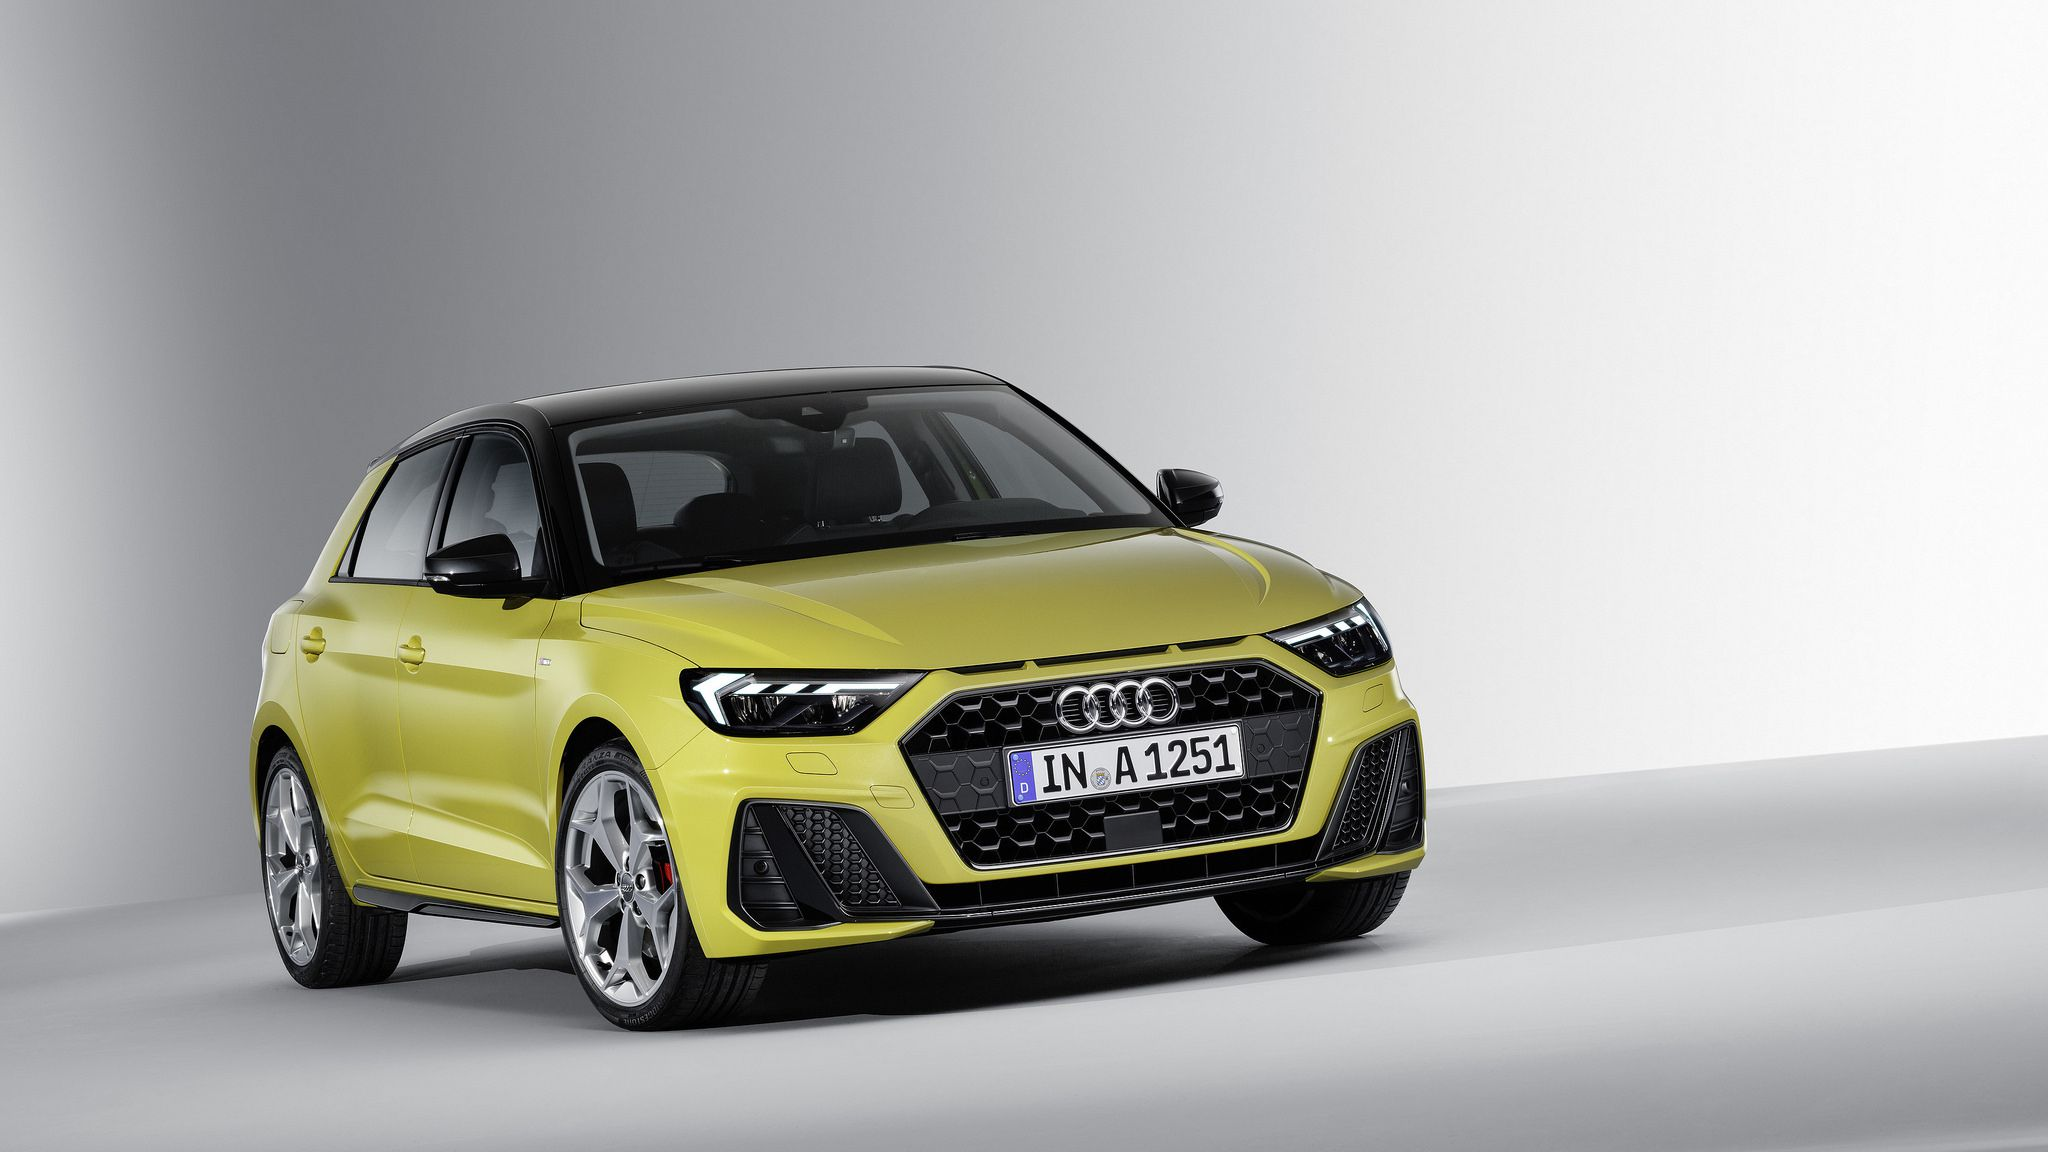 15 images about 2019 Audi A1 Sportback in Grey and Yellow